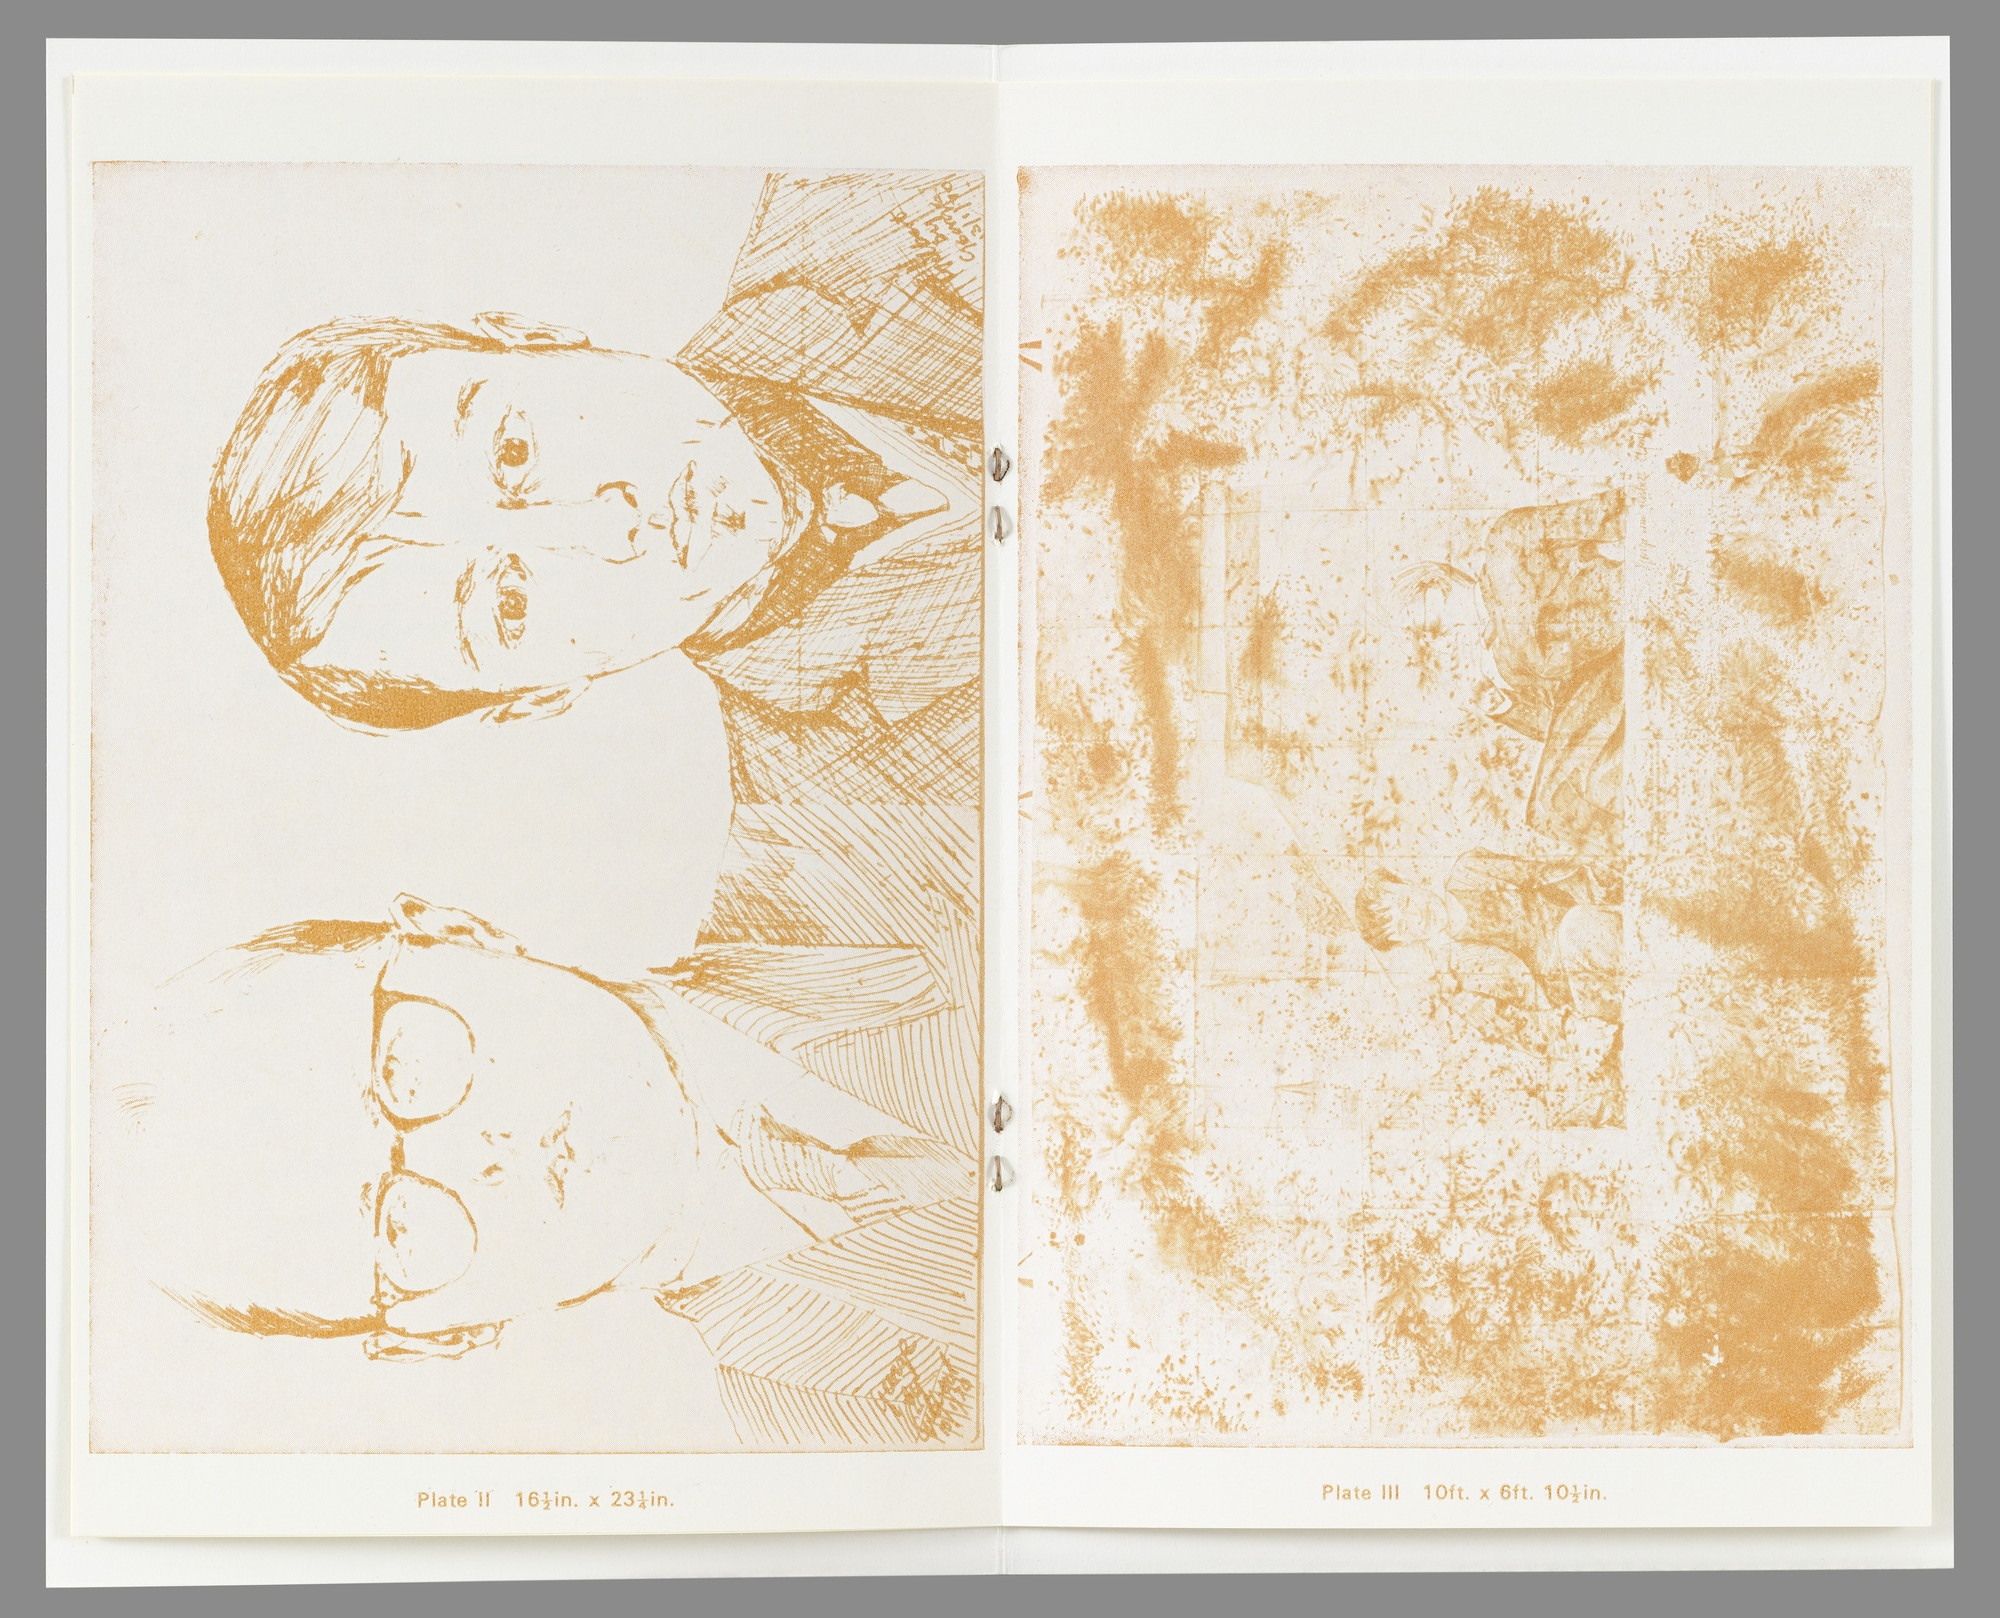 Gilbert & George, Gilbert Proesch, George Passmore. The Pencil on Paper Descriptive Works. 1970